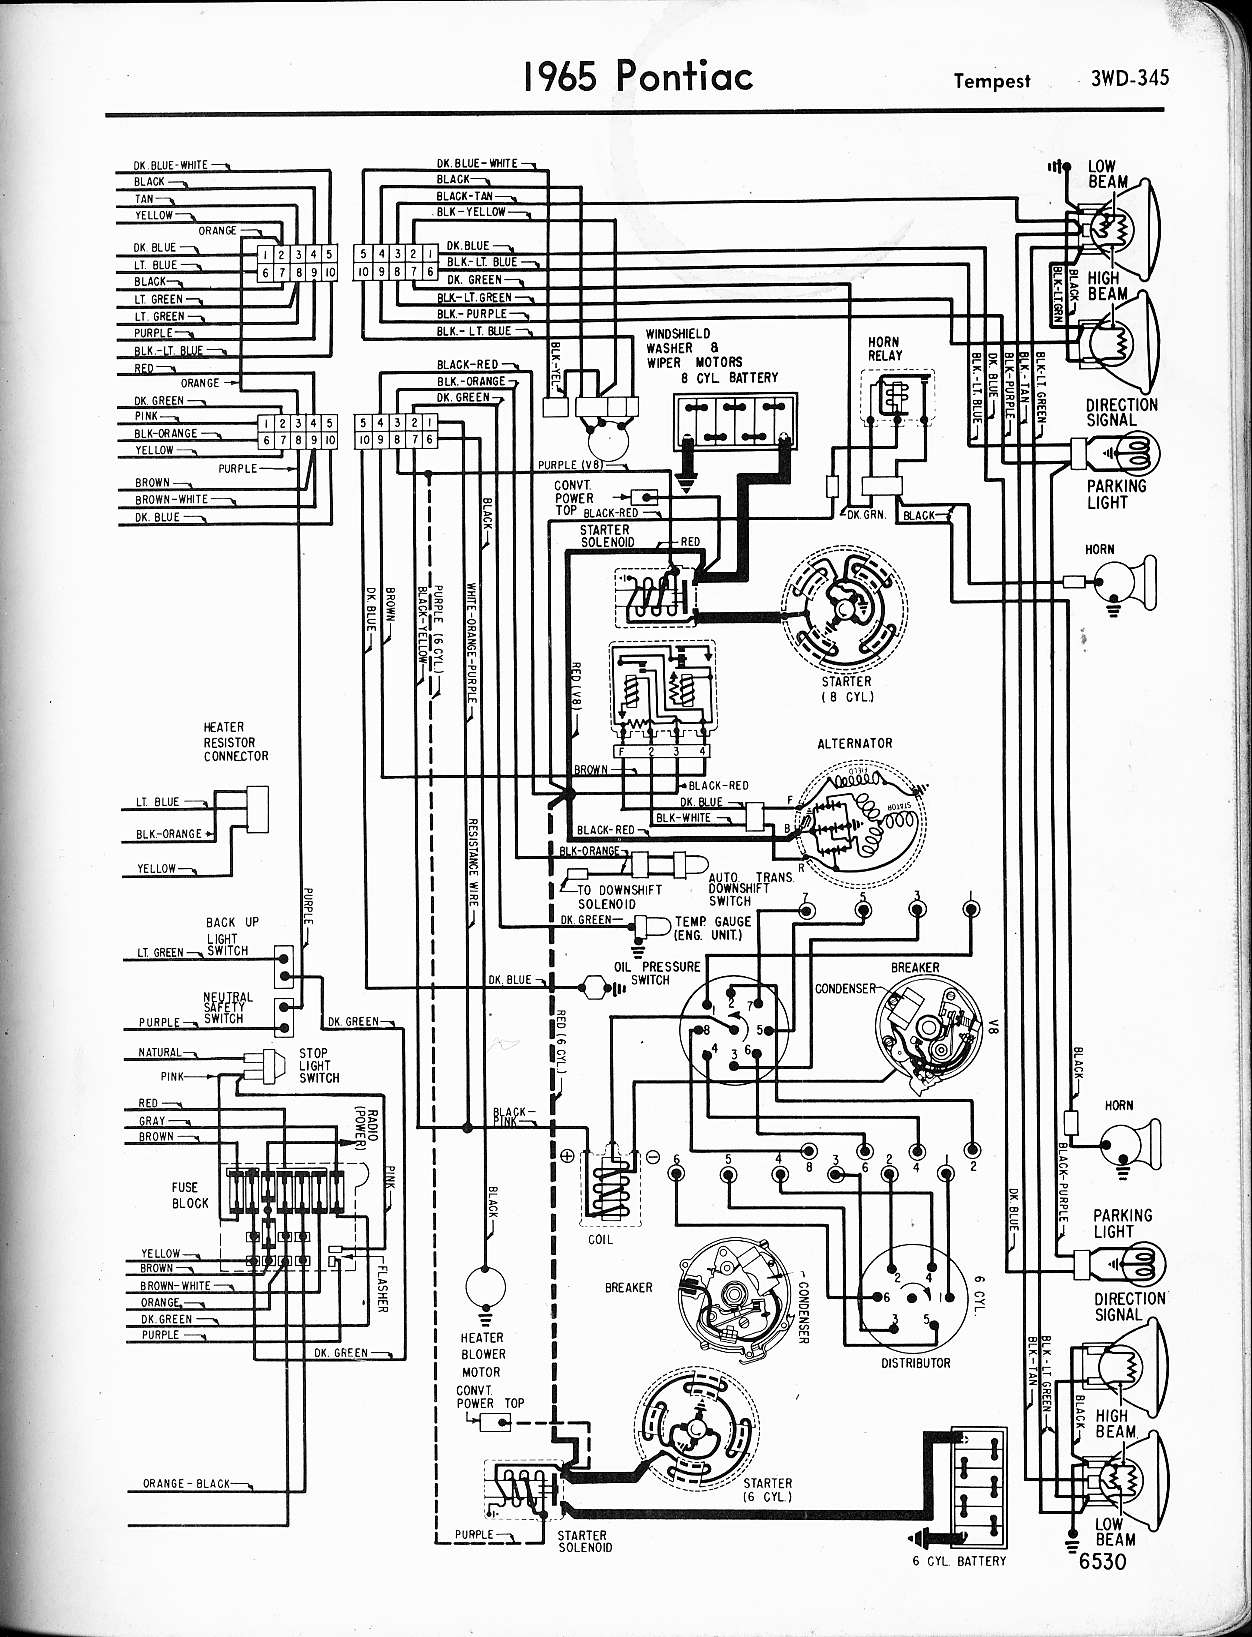 1965 Chevelle Tach Wiring Diagram Library El Camino Wallace Racing Diagrams Rh Wallaceracing Com Gto Dash